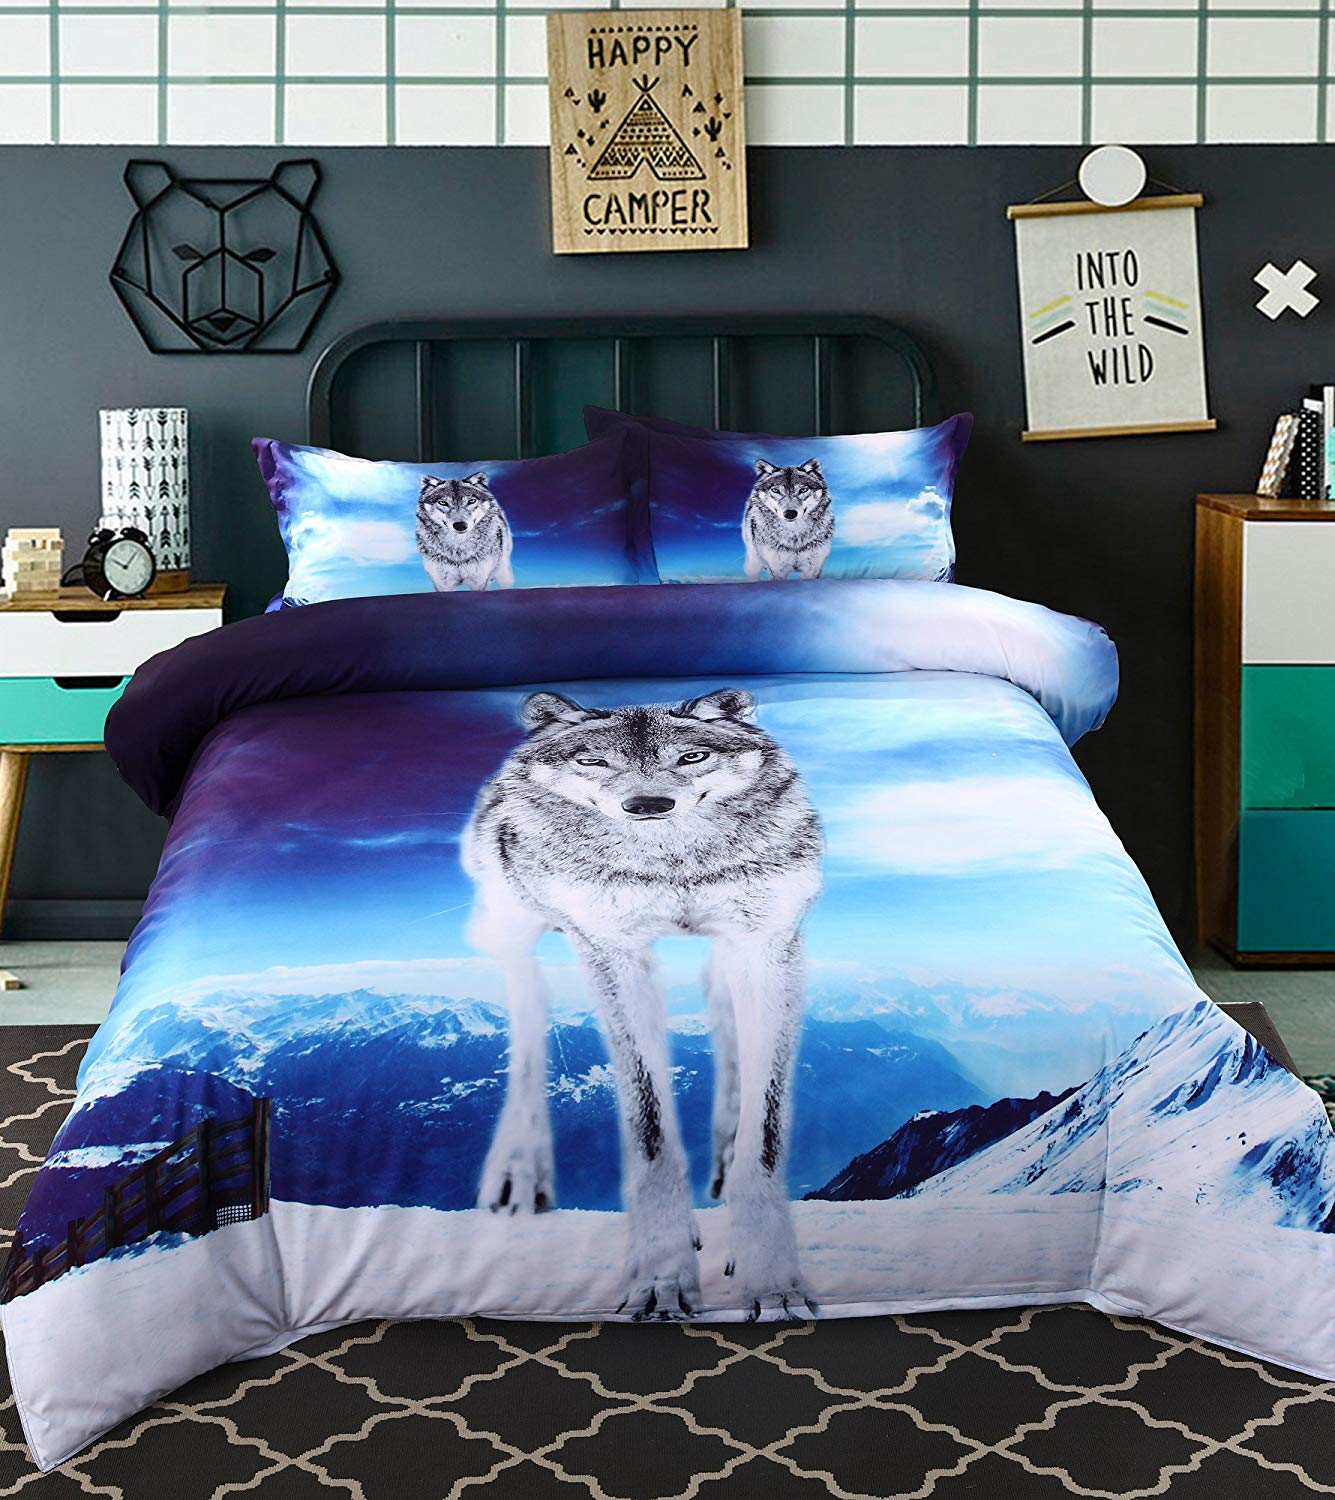 Alicemall 3D Wolf Bedding Super Cool Wolf Standing on the Snow Mountain Blue Bedding Set, 4 Piece Wolf Print Bedroom Sheets Set, King Size Duvet Cover Set (King, Blue)